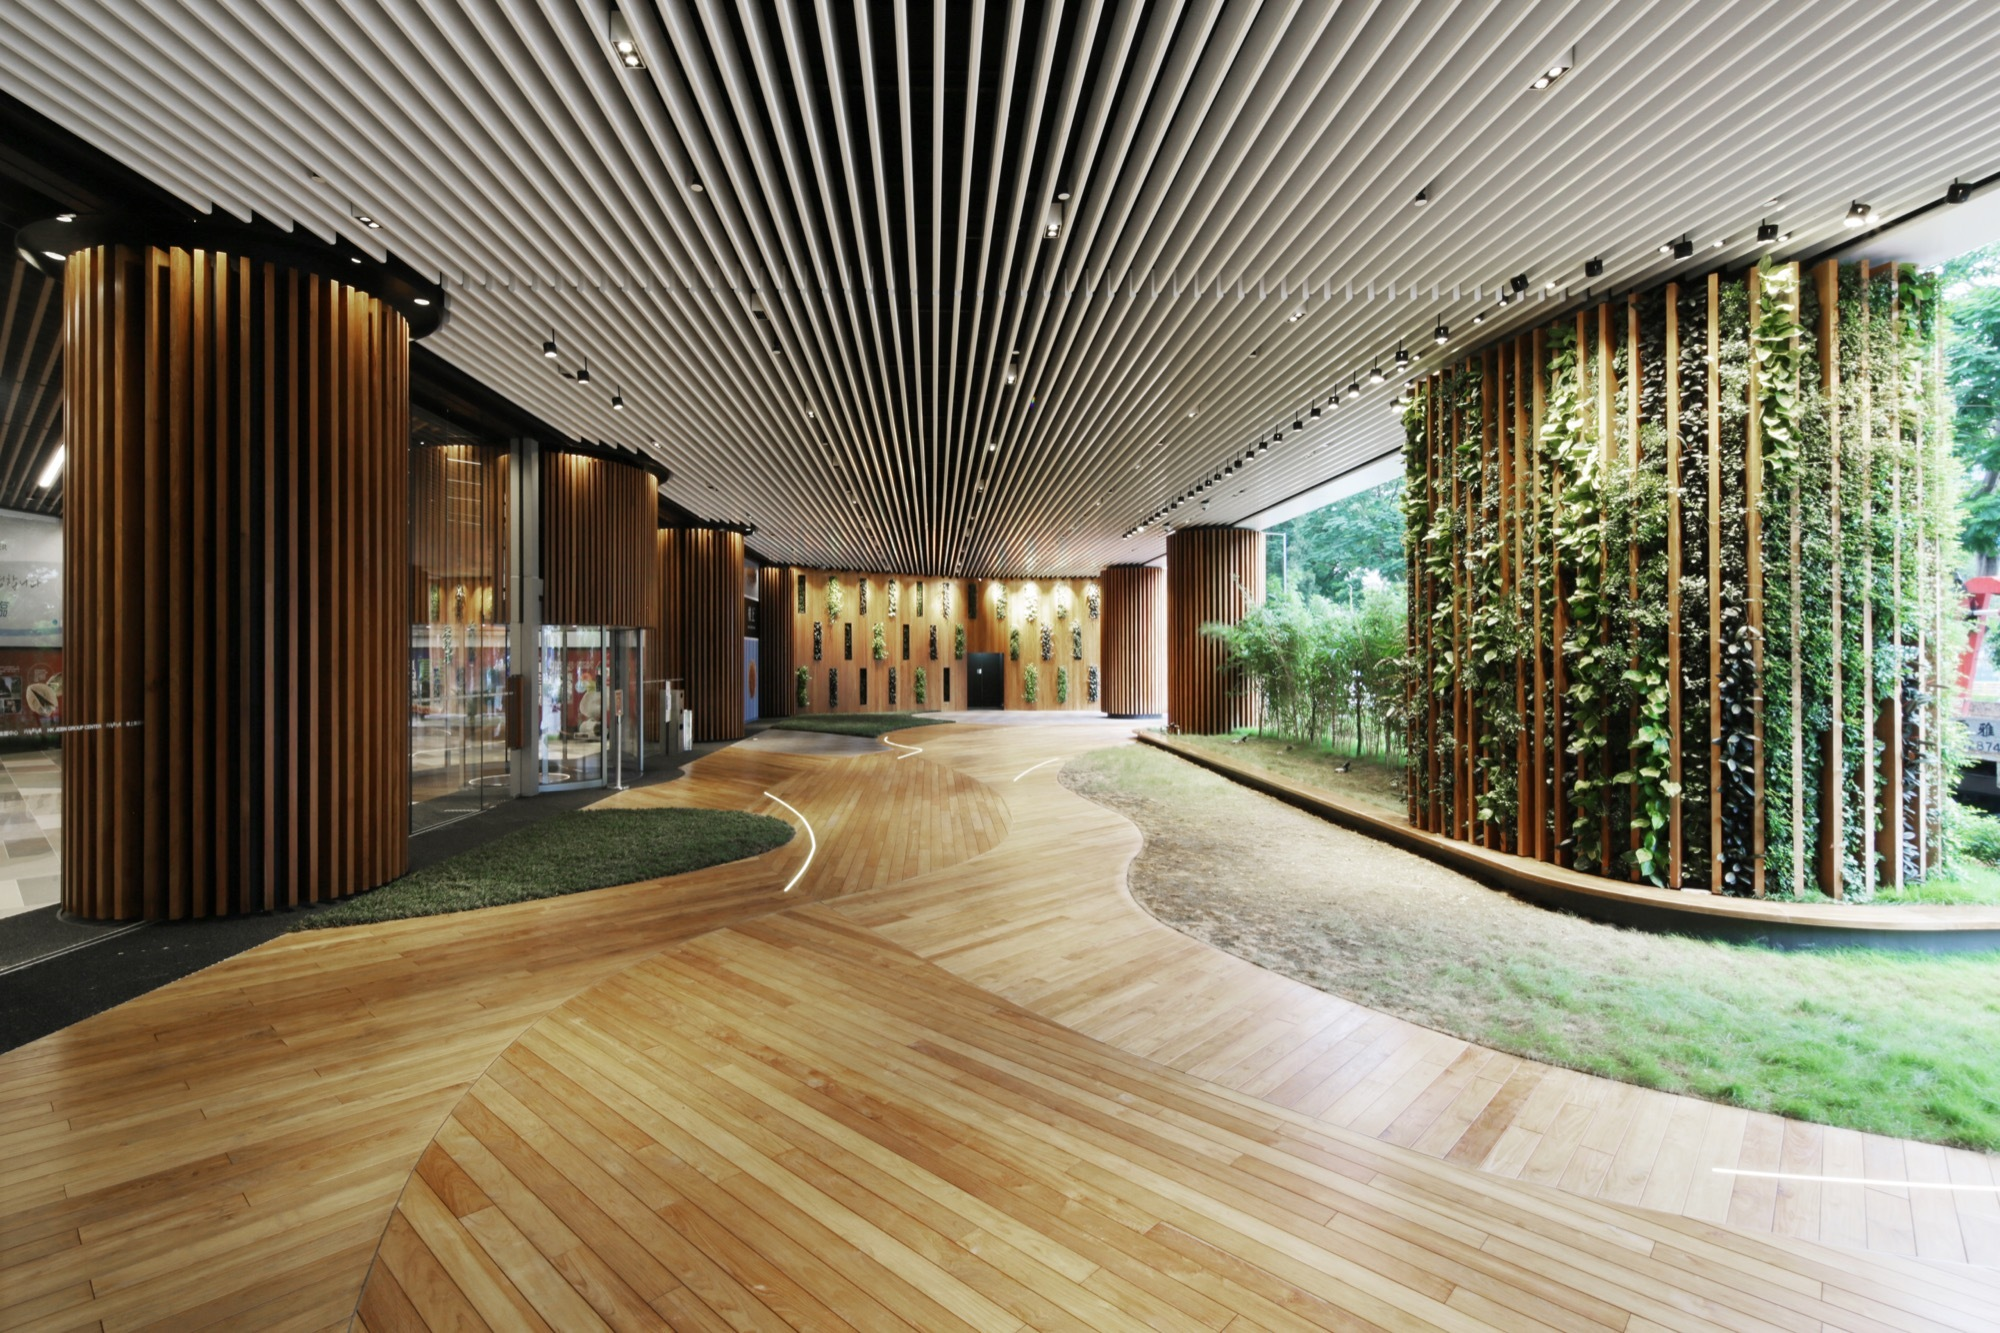 Office Lobby / 4N design architects | ArchDaily